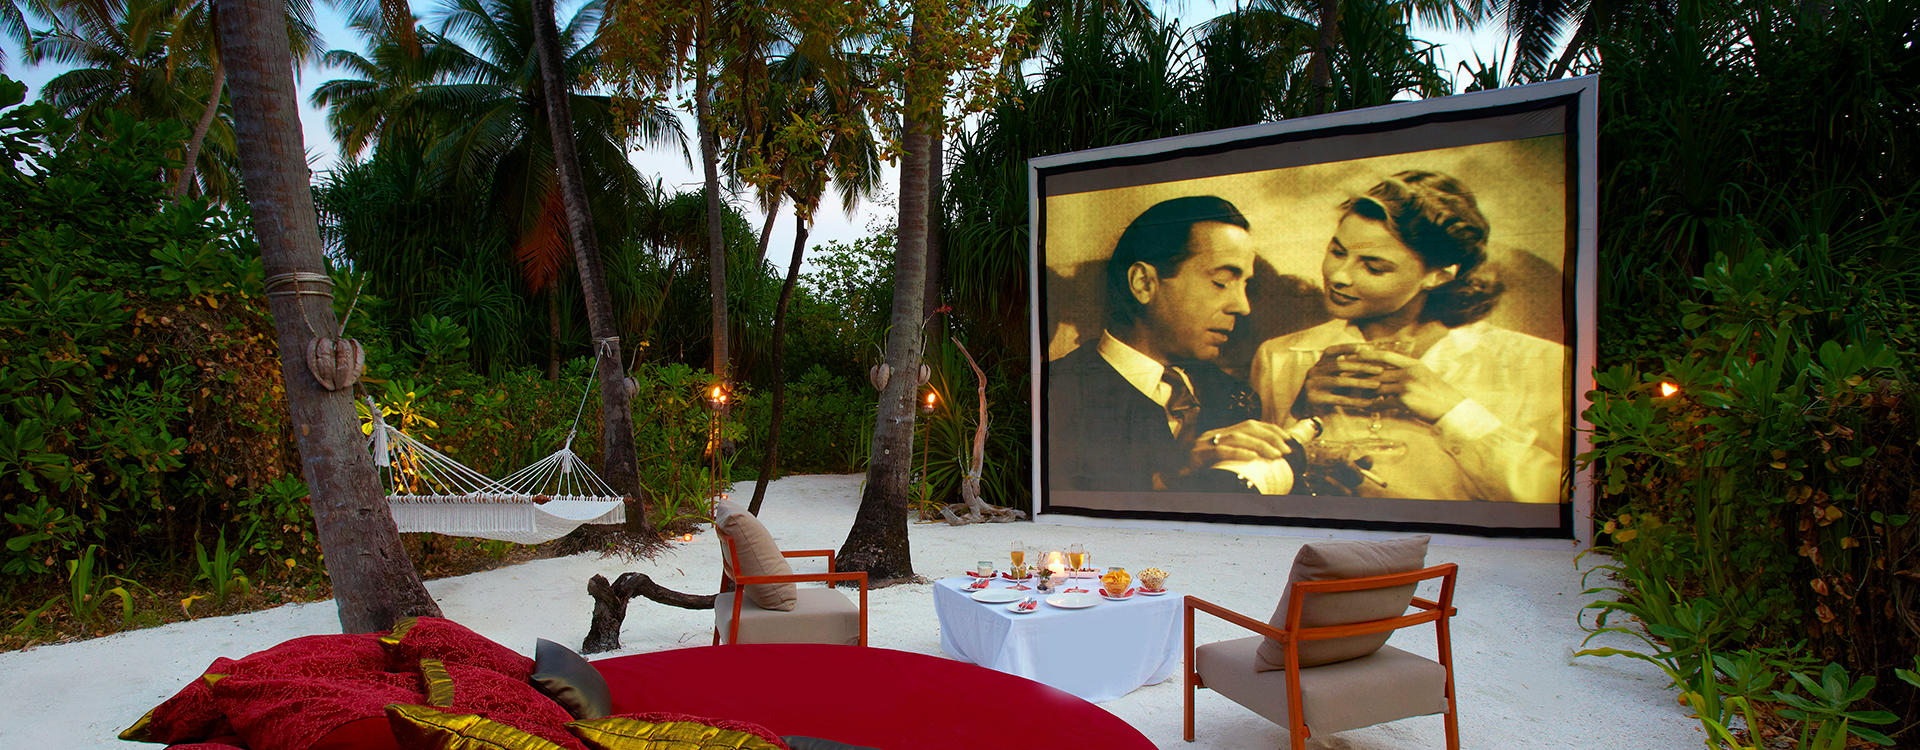 AN-VELI-MALDIVES_PRIVATE-MOVIE-UNDER-THE-STARS